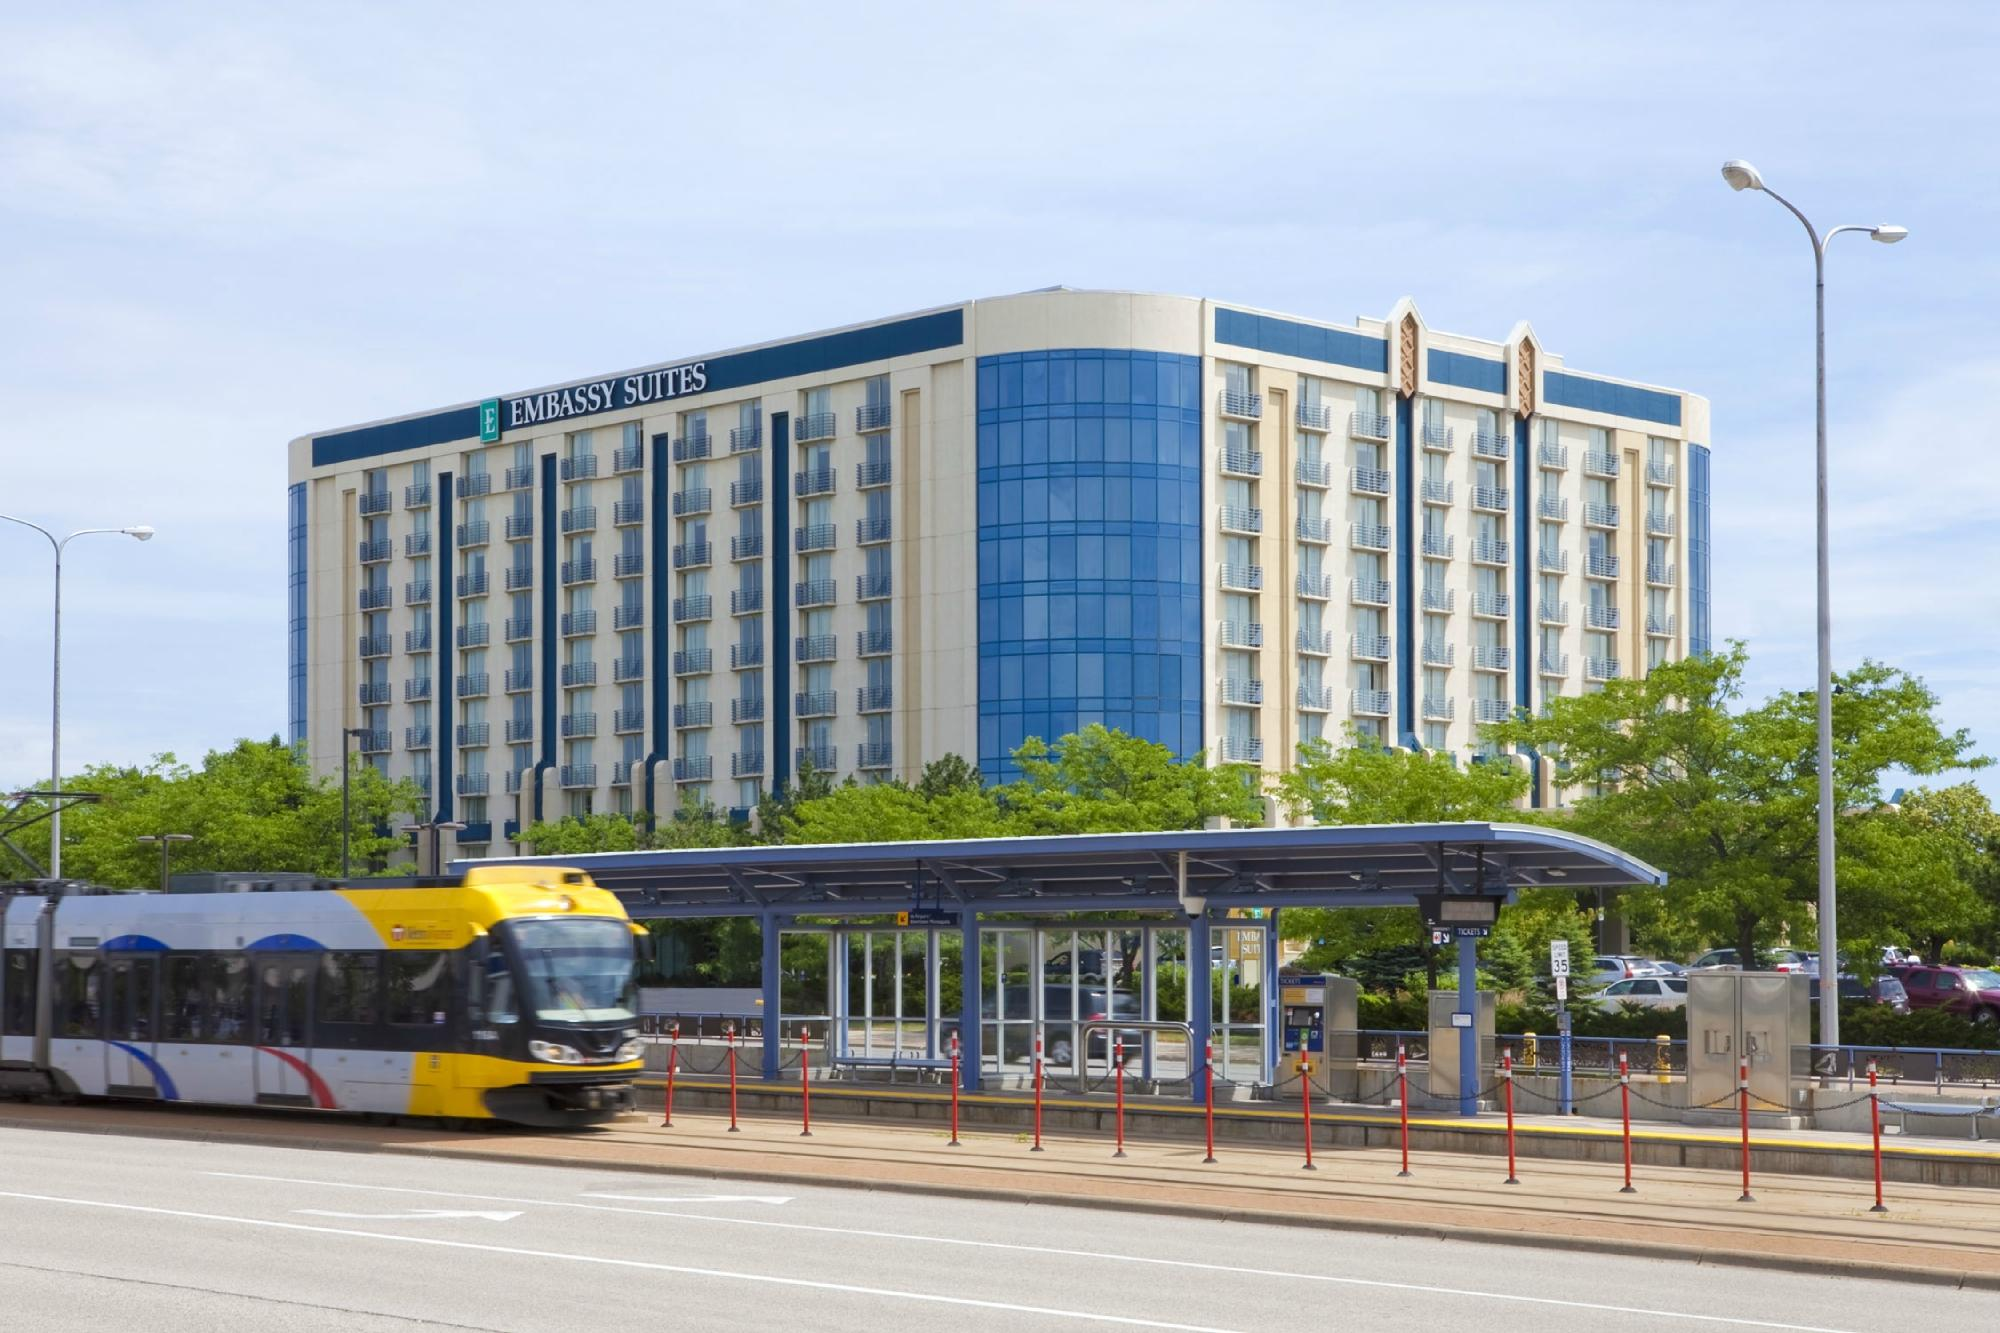 ‪Embassy Suites by Hilton Minneapolis - Airport‬